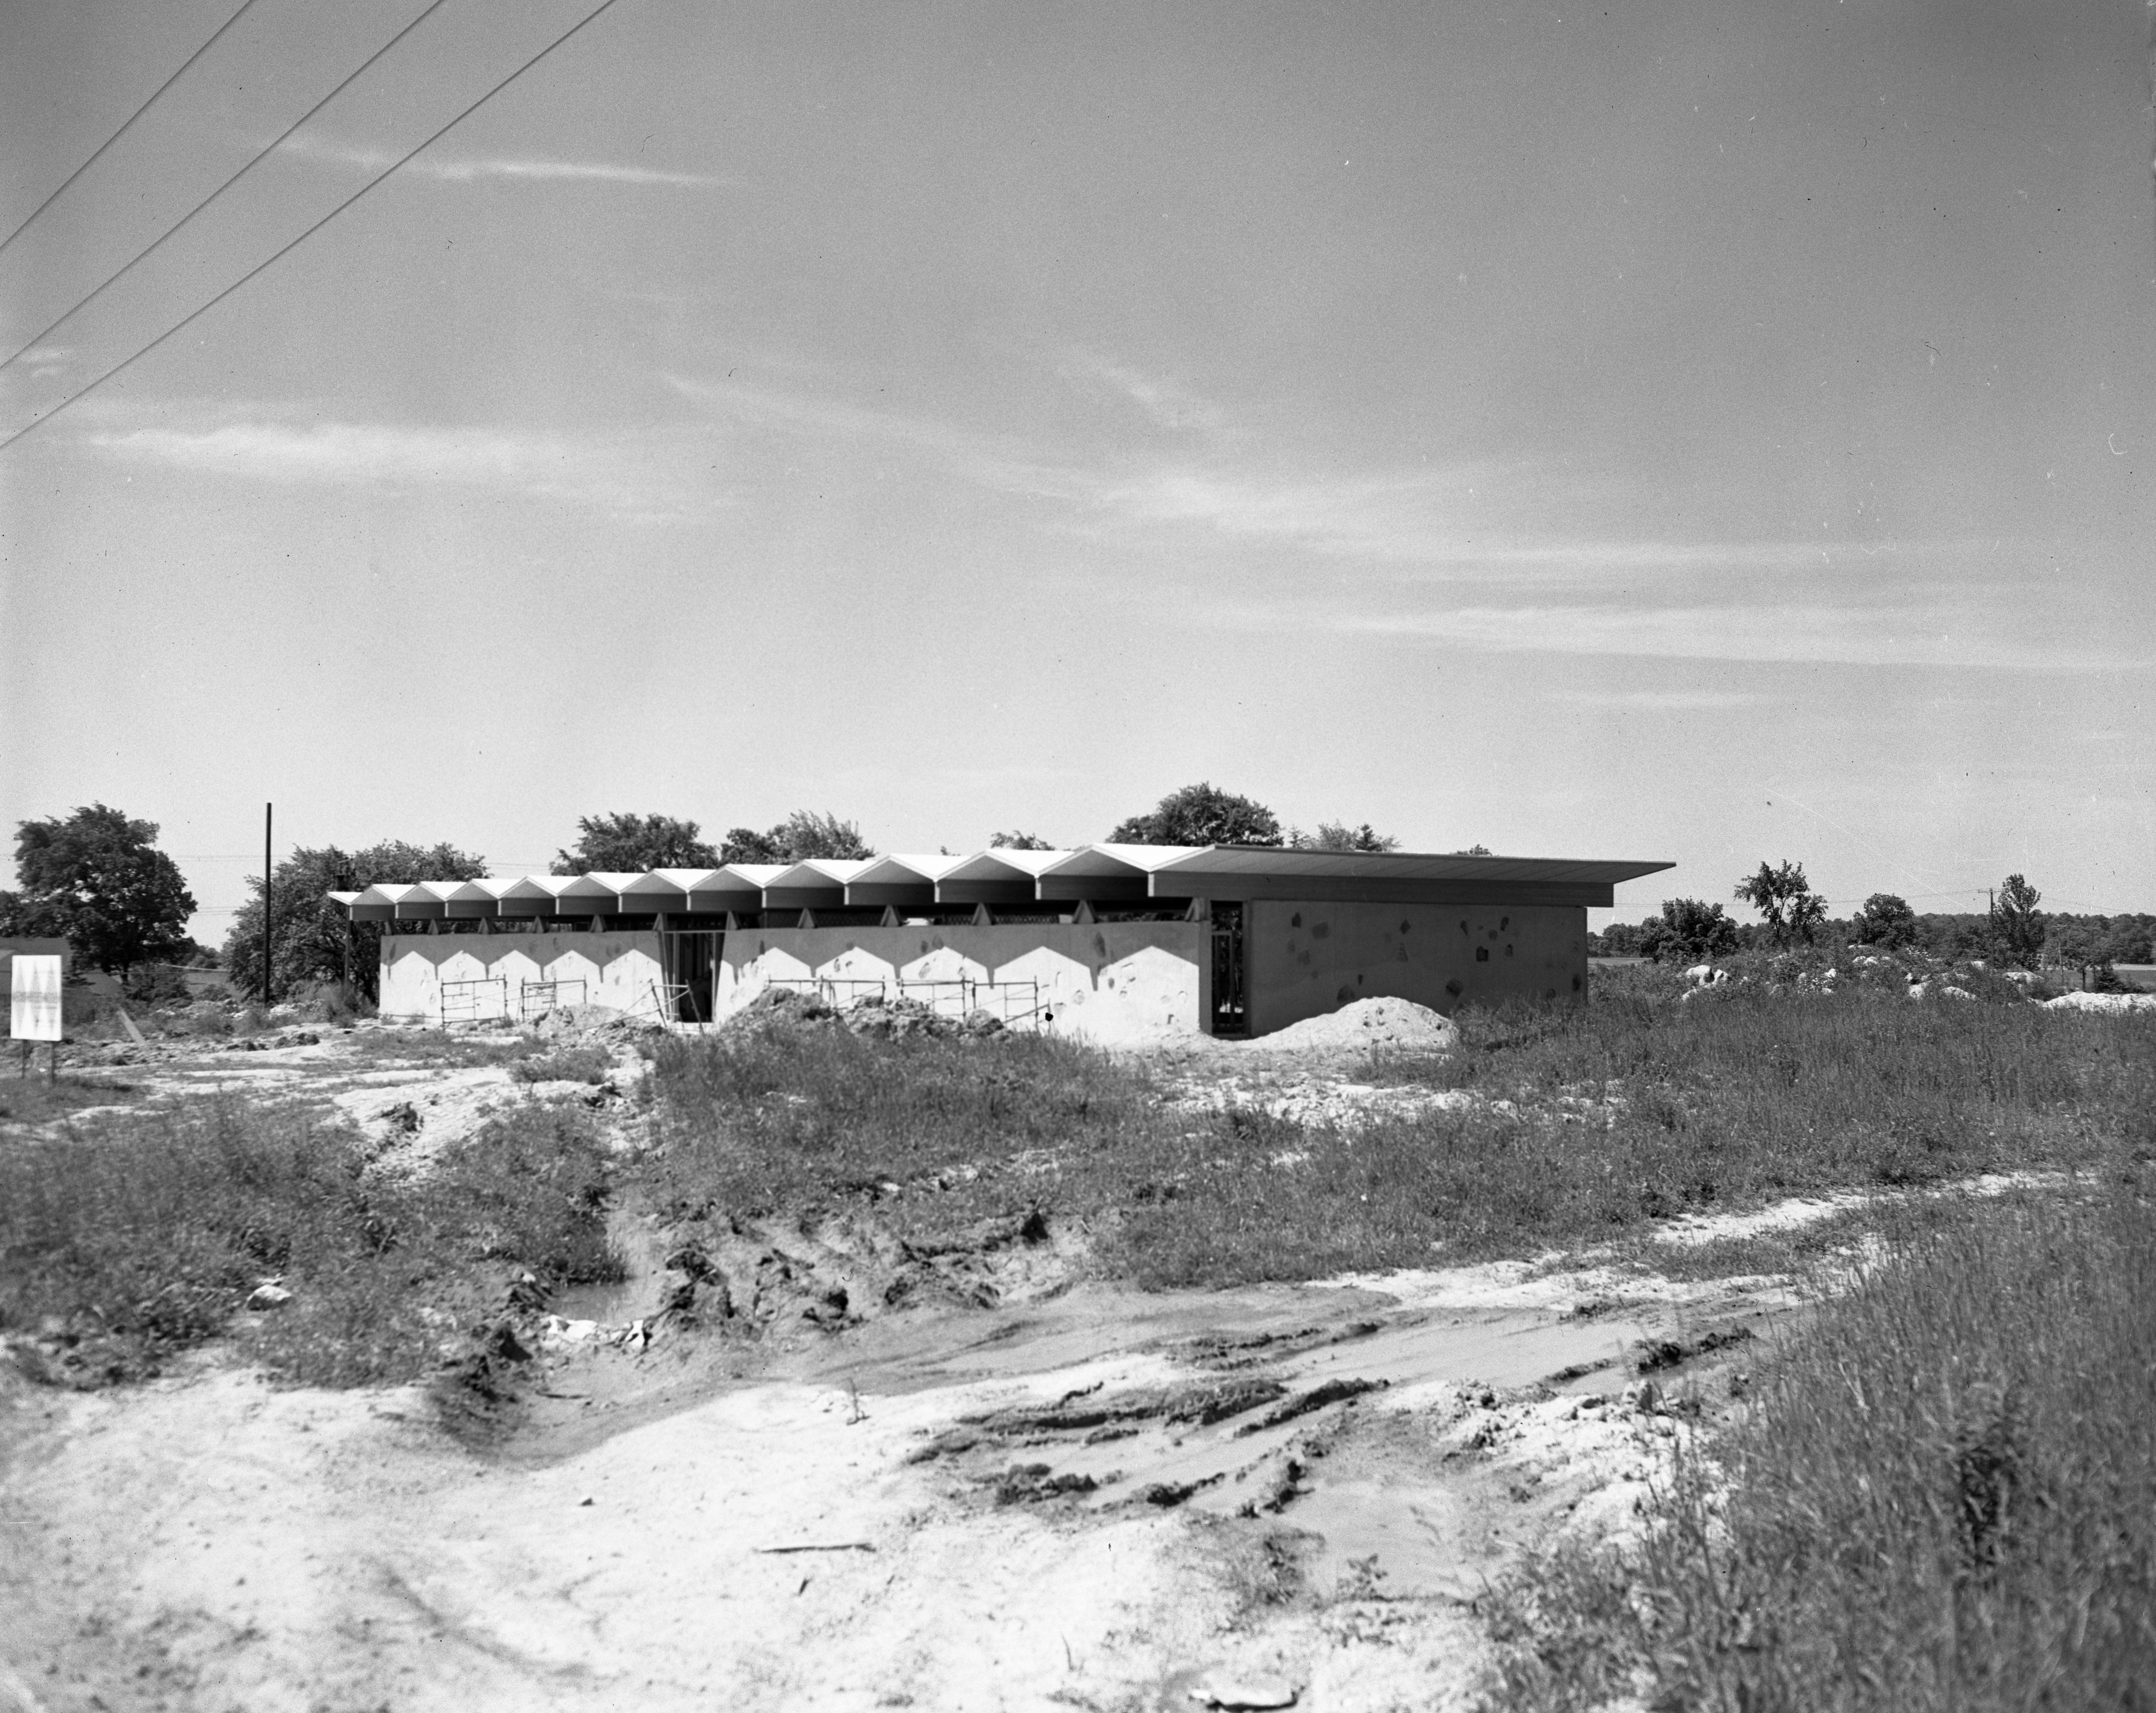 Construction of New Presbyterian Church, Greenview, June 1958 image